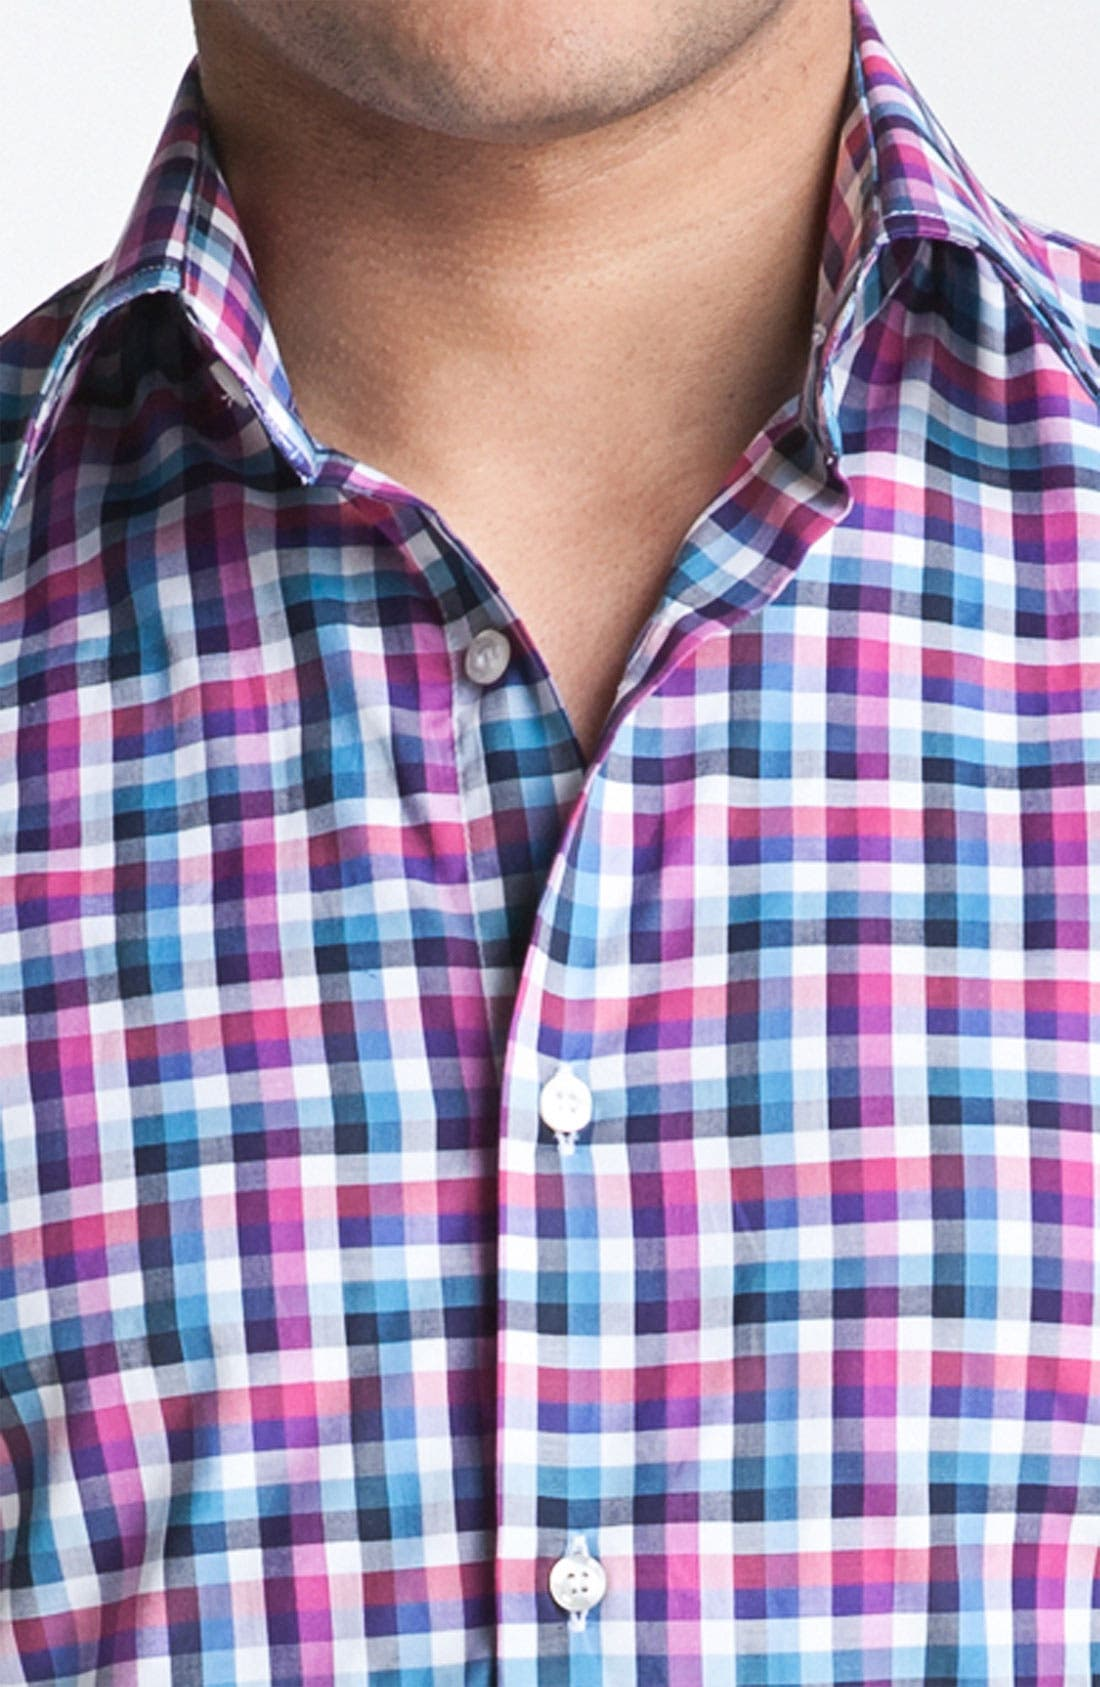 Alternate Image 3  - Etro Check Plaid Woven Dress Shirt